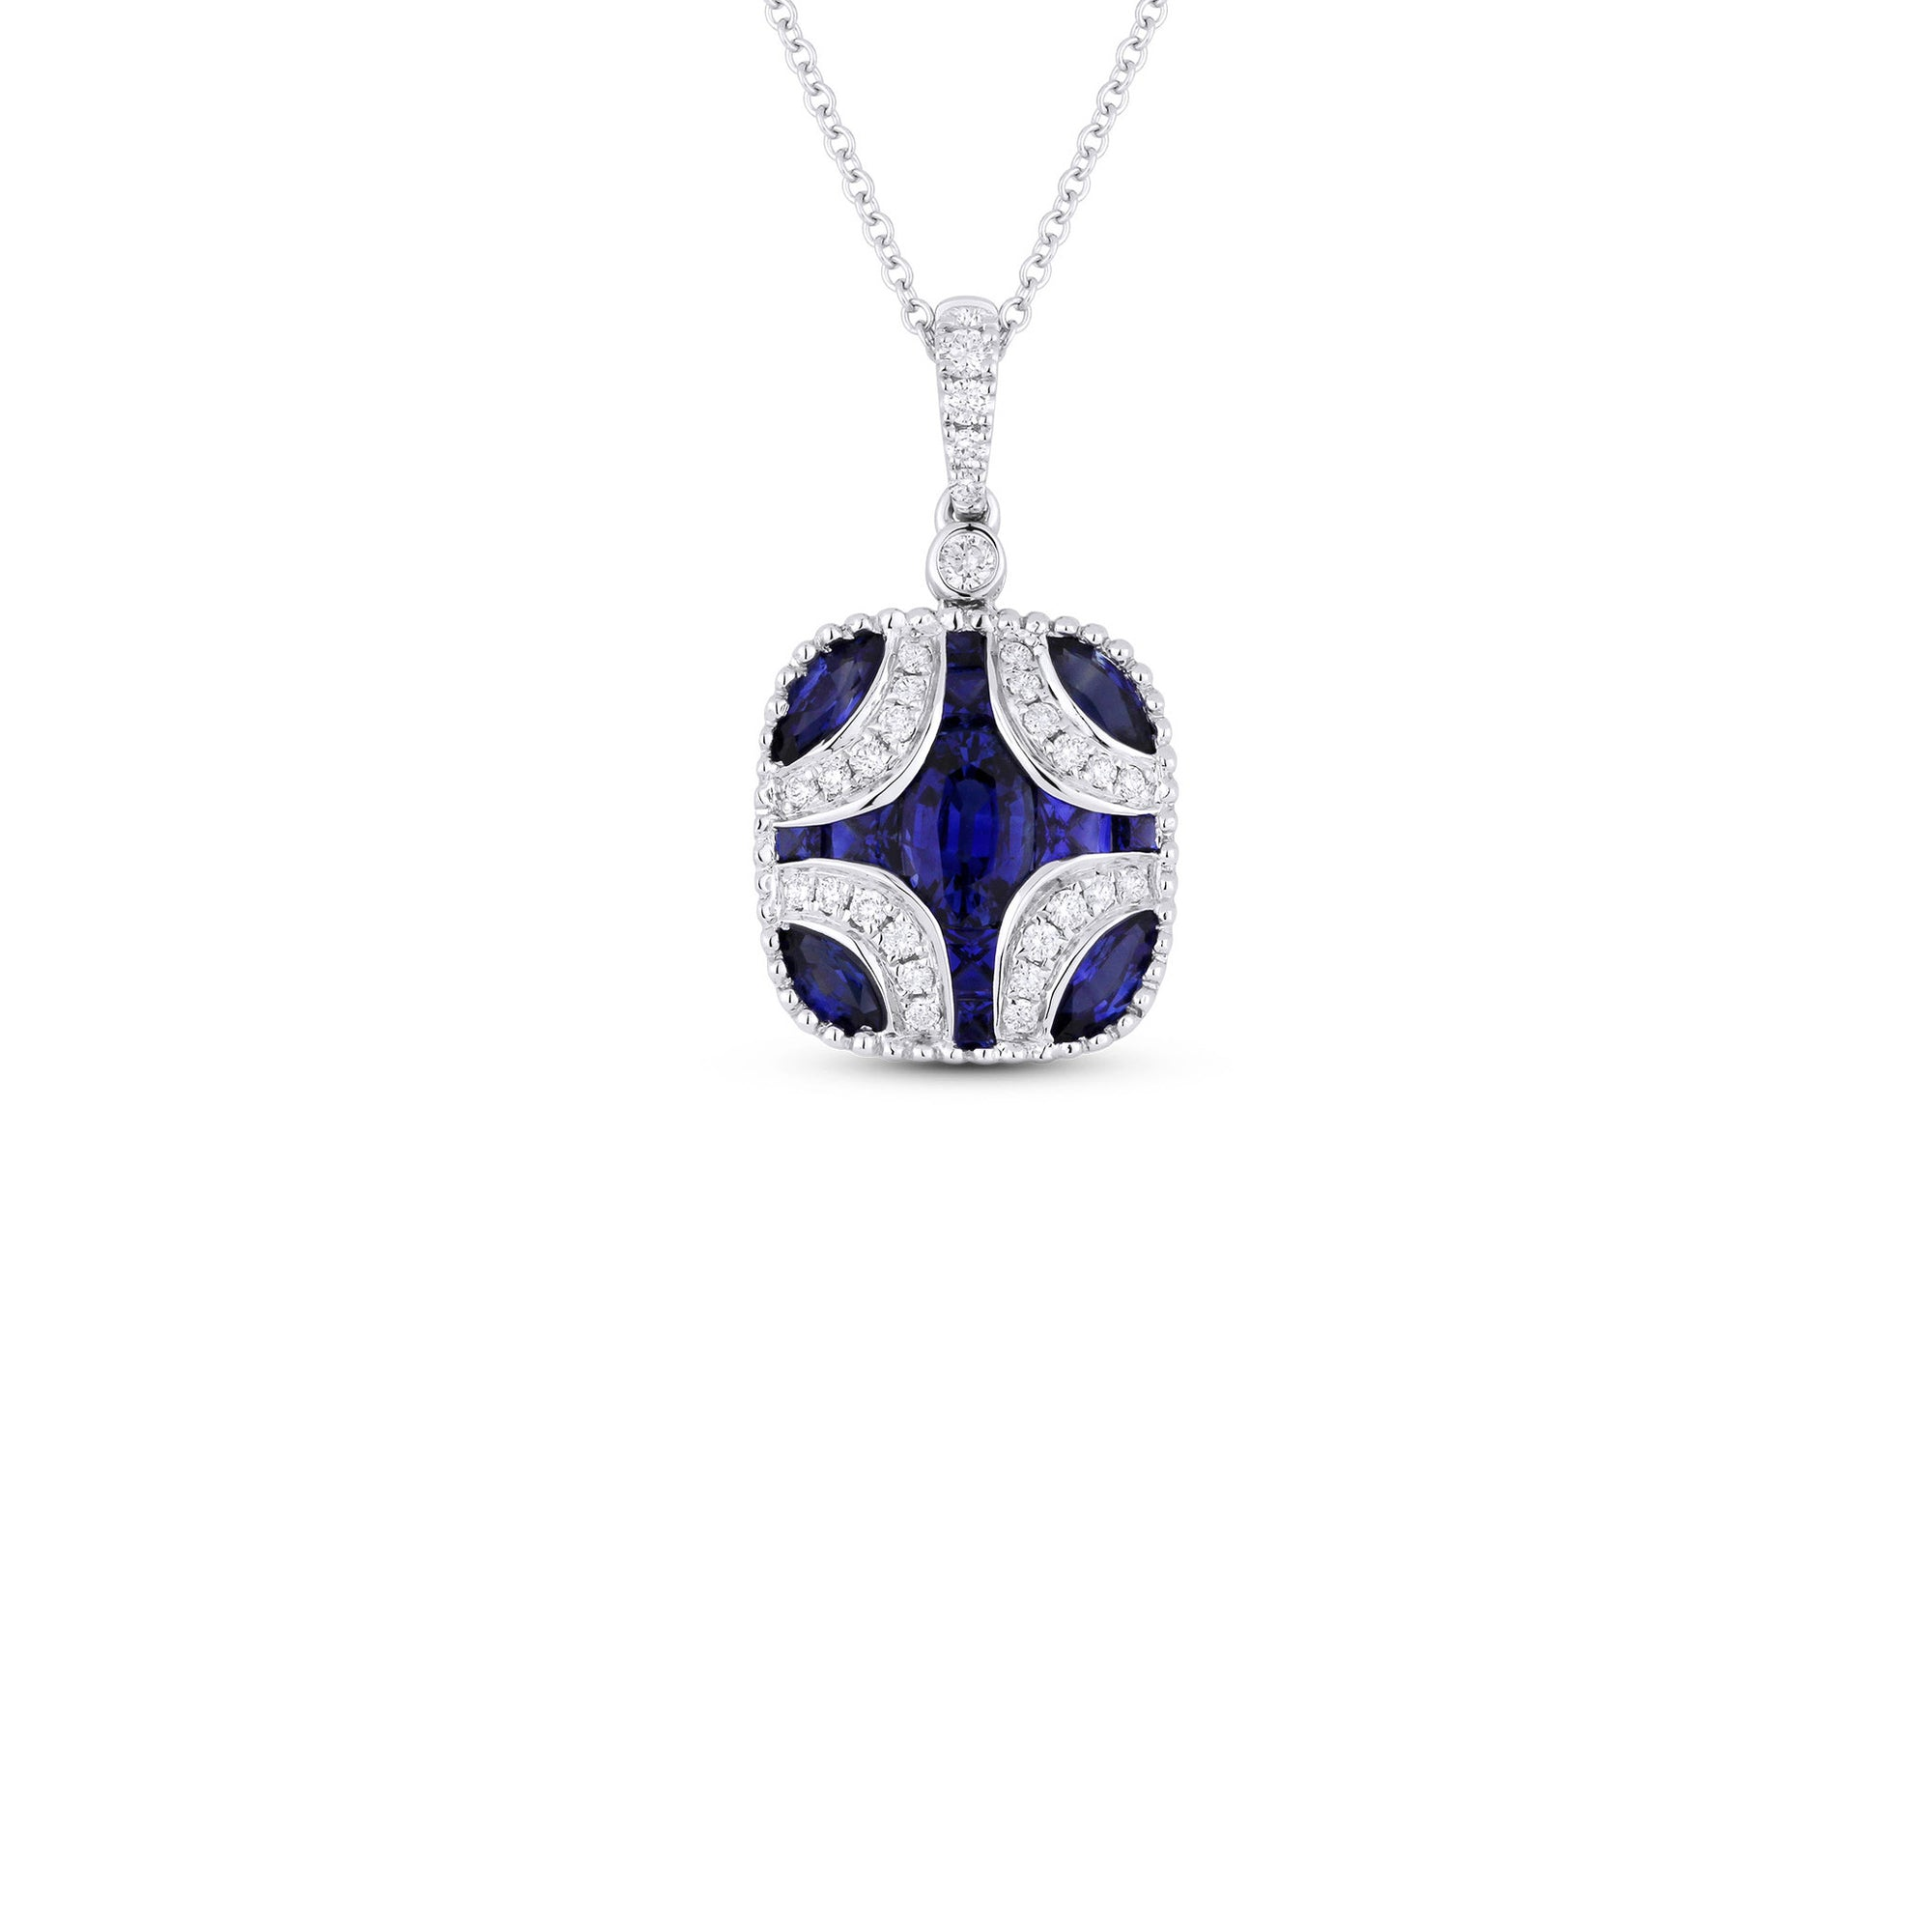 Deco inspired blue sapphire and diamond pendant necklace desires deco inspired blue sapphire and diamond pendant necklace aloadofball Image collections